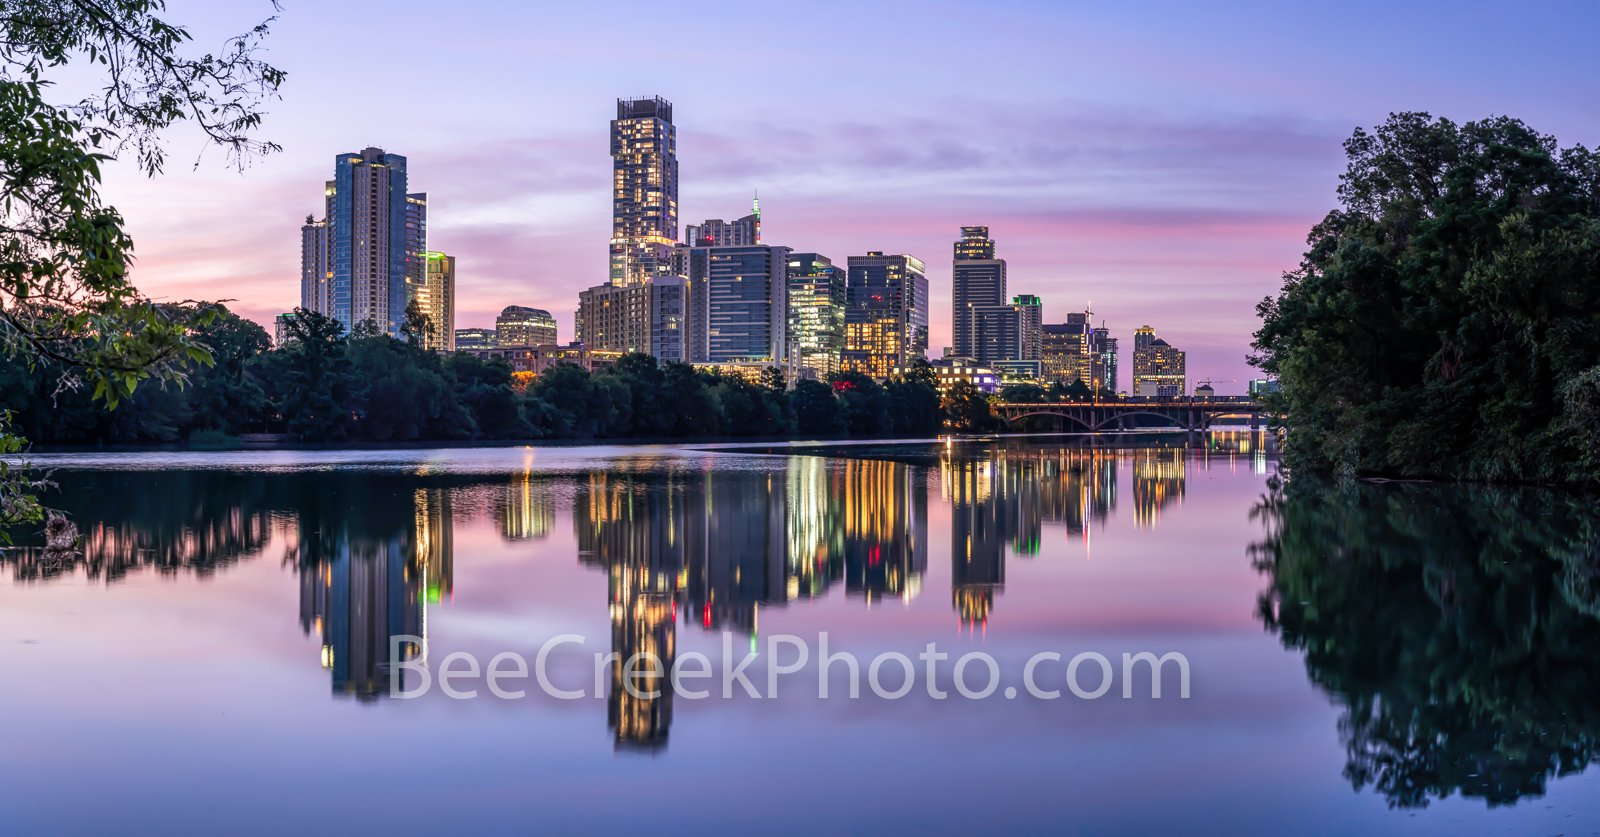 Austin Skyline, austin lou neff point, lou neff point, sunrise, reflections, panorama, Independent, austonian, lamar bridge, pinks,  purple, violet crown, architecture, lady bird lake,